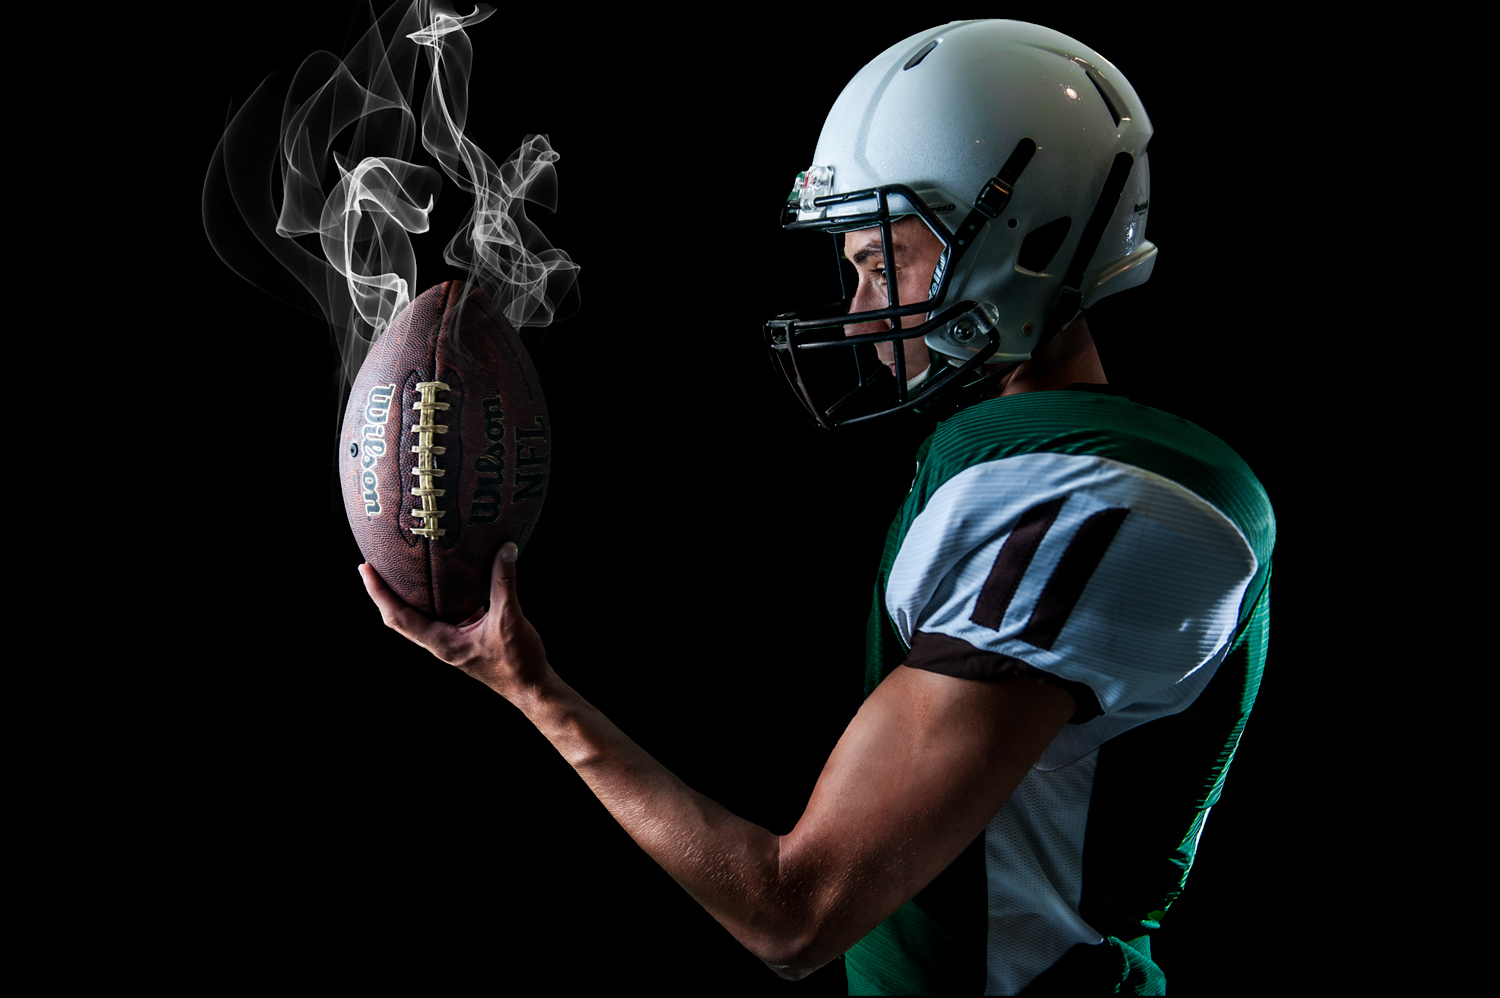 005-caputo-flagstaff-high-school-football-photo©2017ther2studio